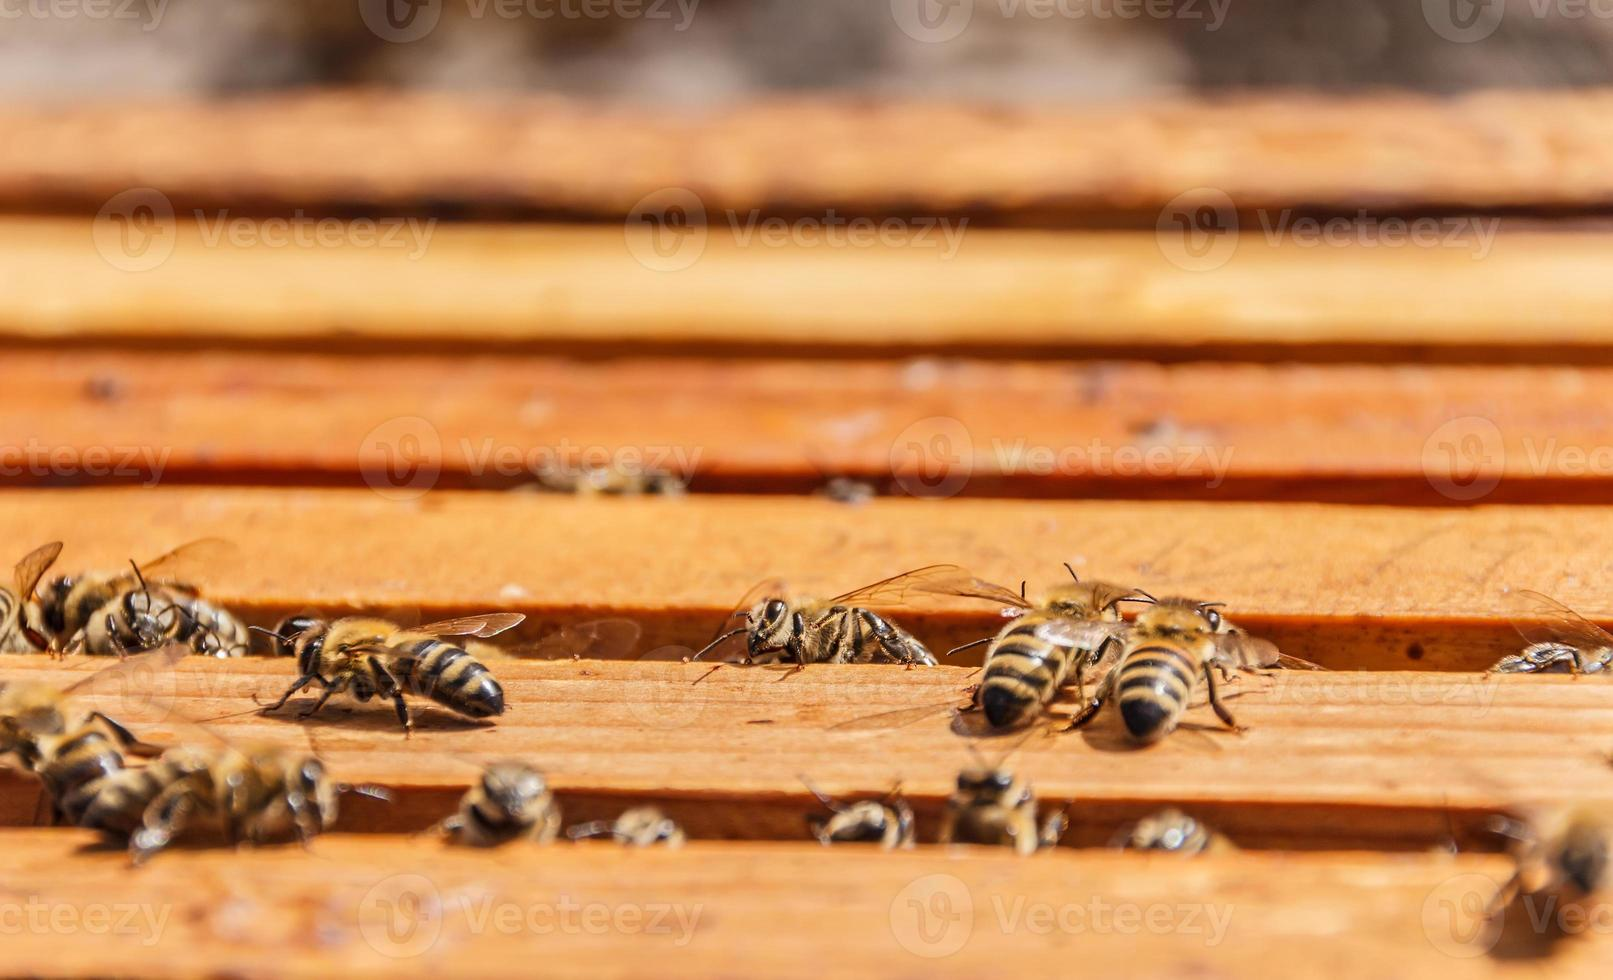 Bees on honeycomb frames photo